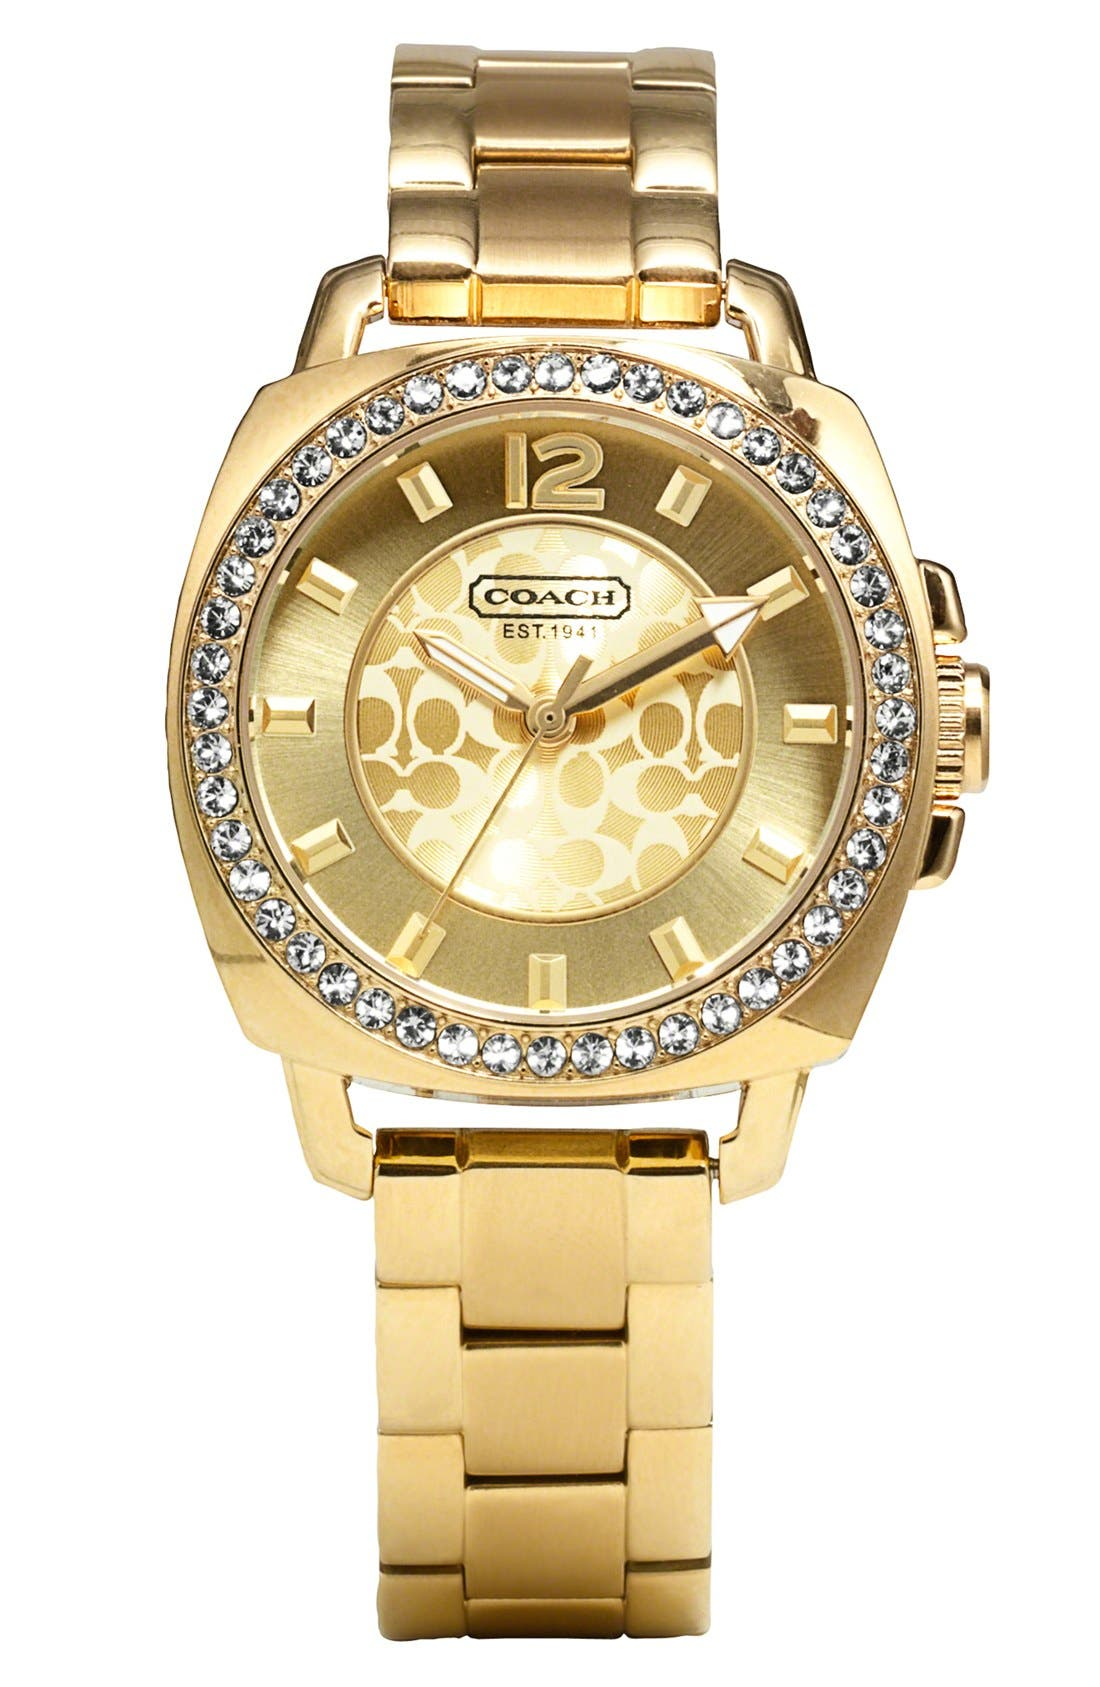 Main Image - COACH 'Boyfriend' Crystal Bezel Bracelet Watch, 34mm